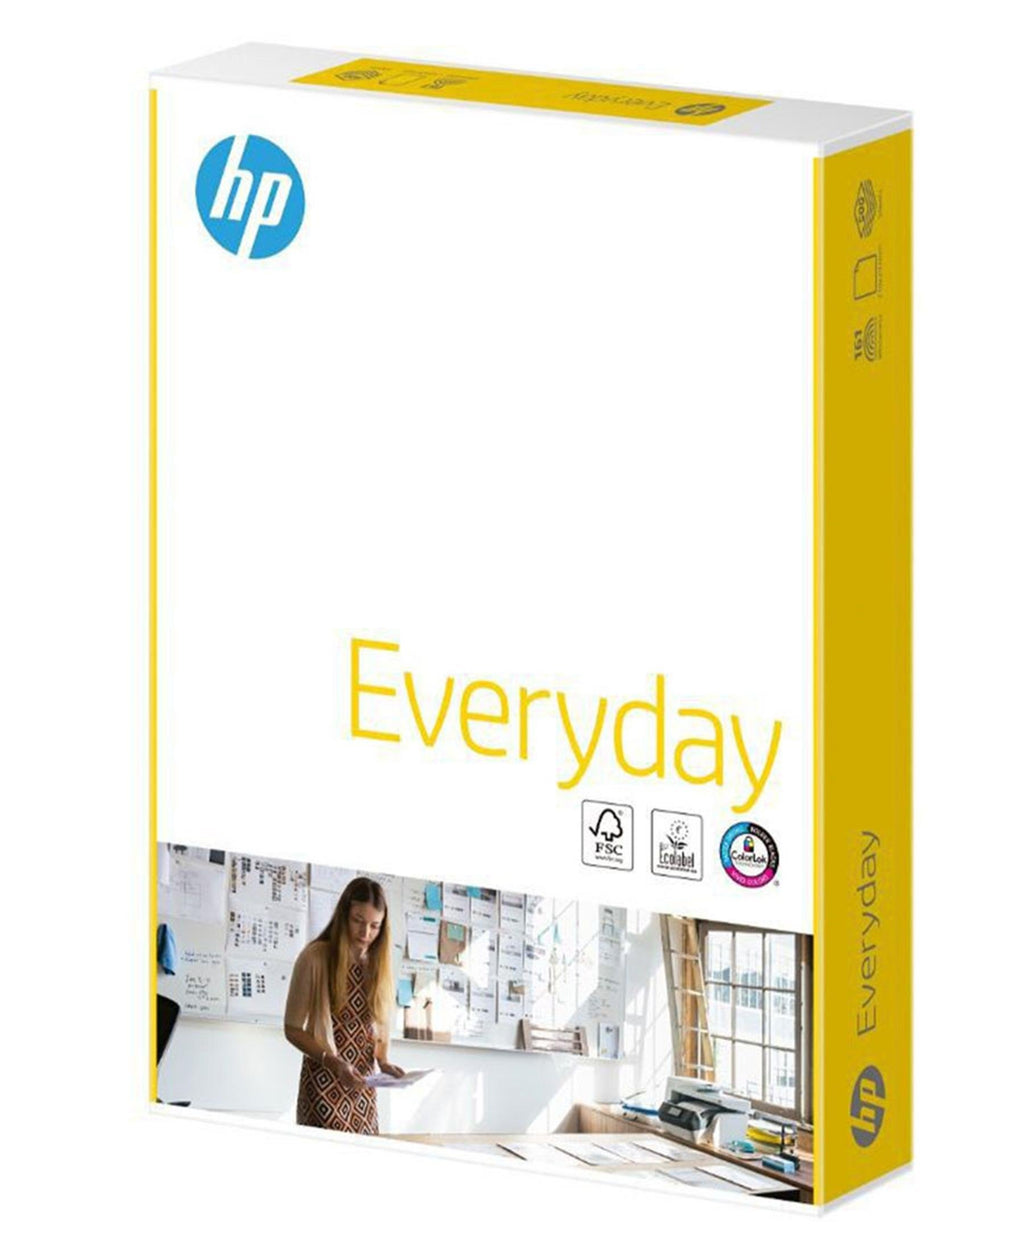 Hp Everday A4 80GSM Papers - White